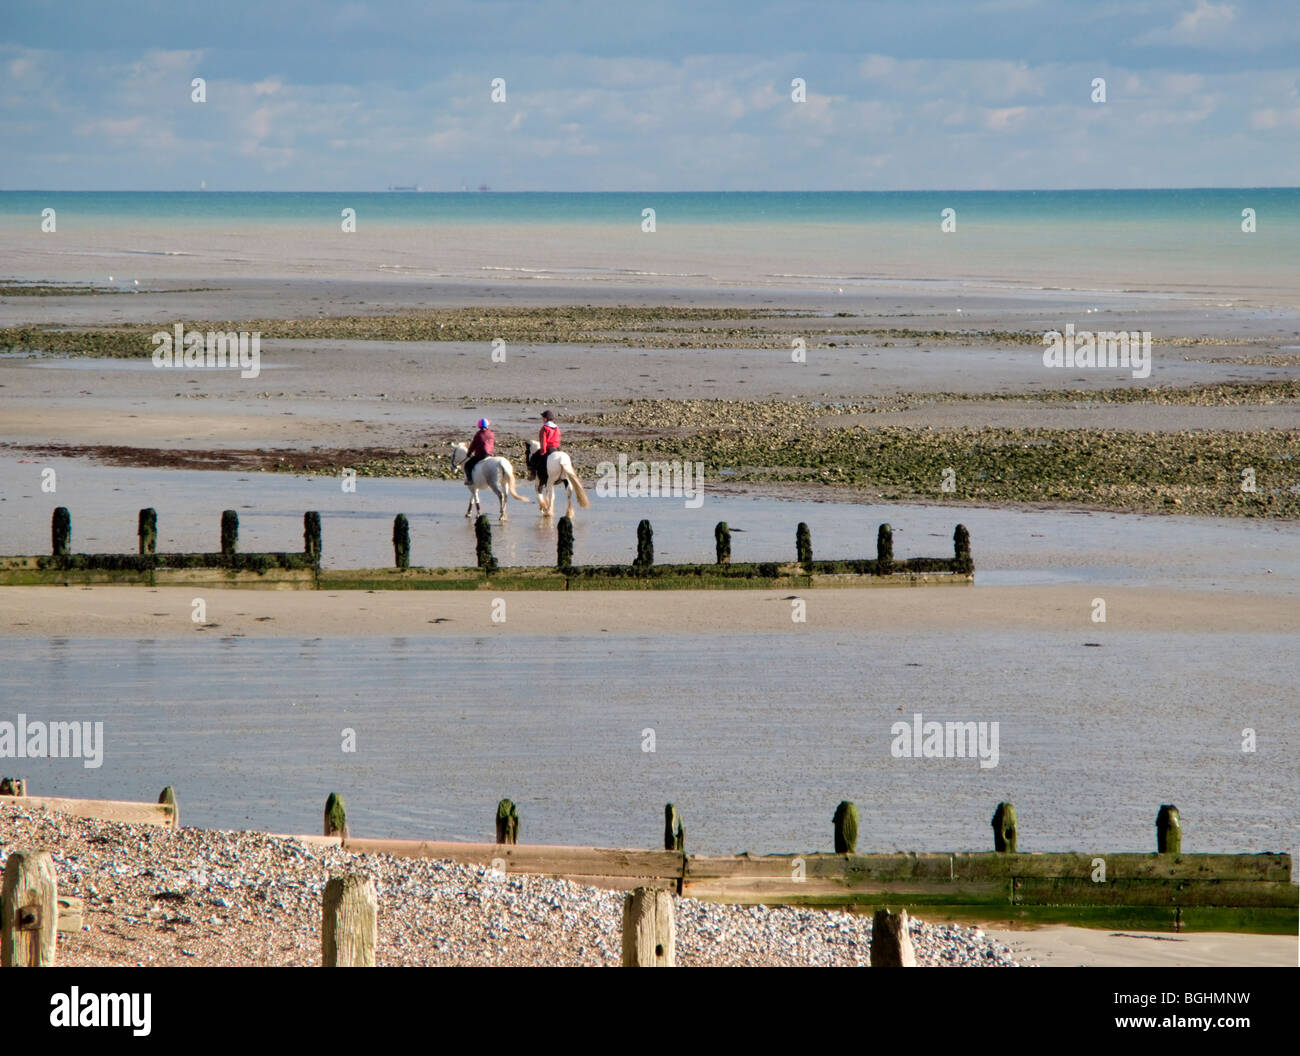 Riders On The Beach Photos   Riders On The Beach Images - Alamy c7c3599fe2bb